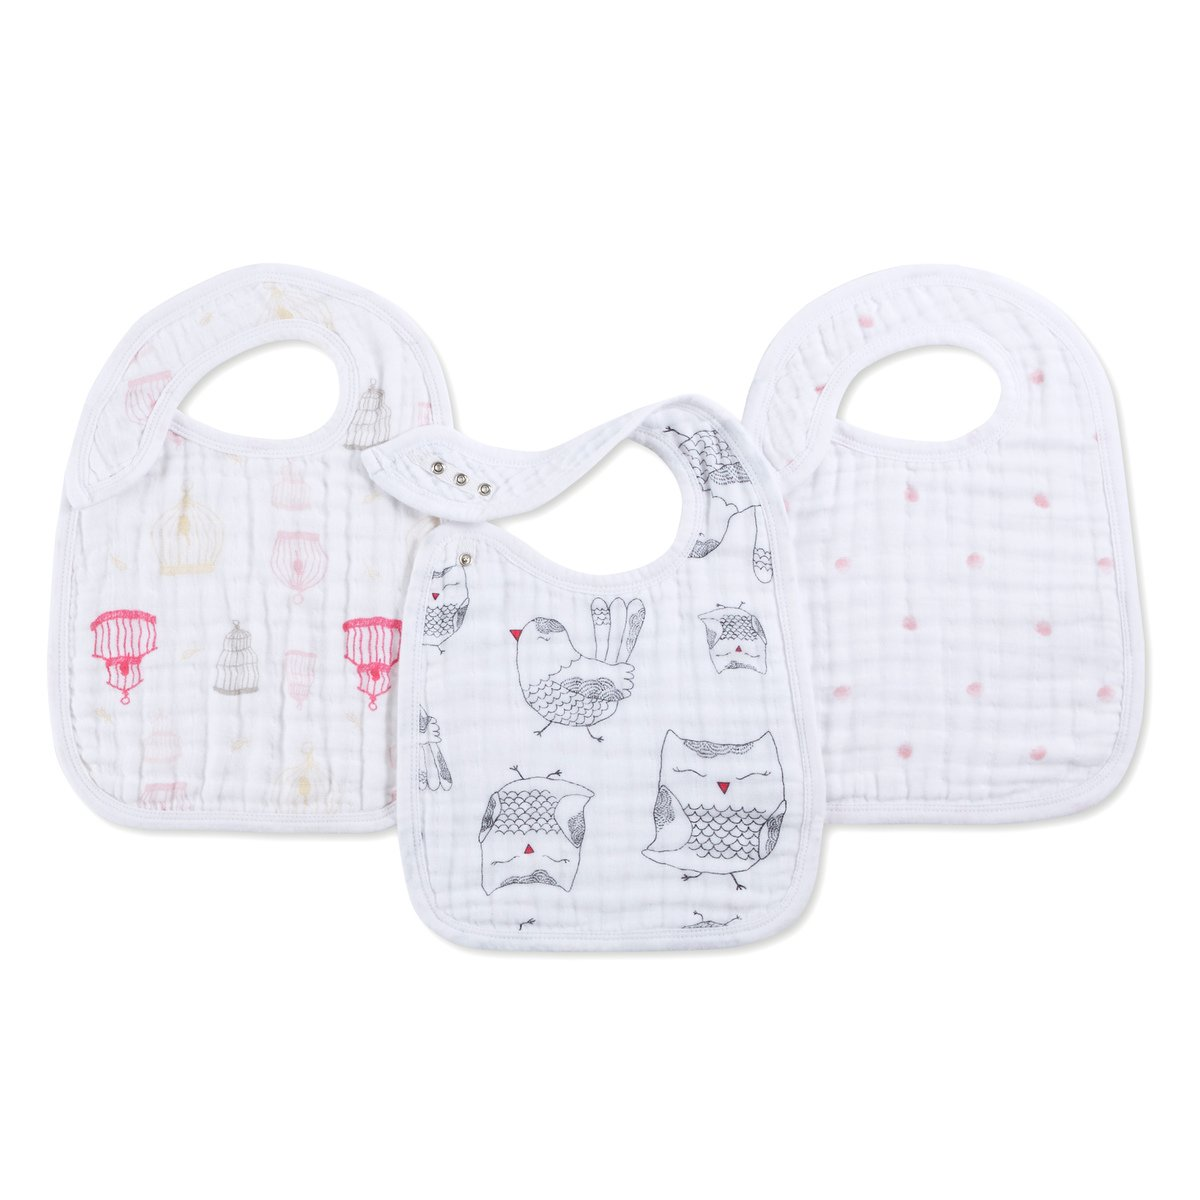 "aden + anais Snap Bib, 100% Cotton Muslin, Soft Absorbent 3 Layers, Adjustable, 9"" X 13"", 3 Pack, Thistle 9"" X 13"" 7122"